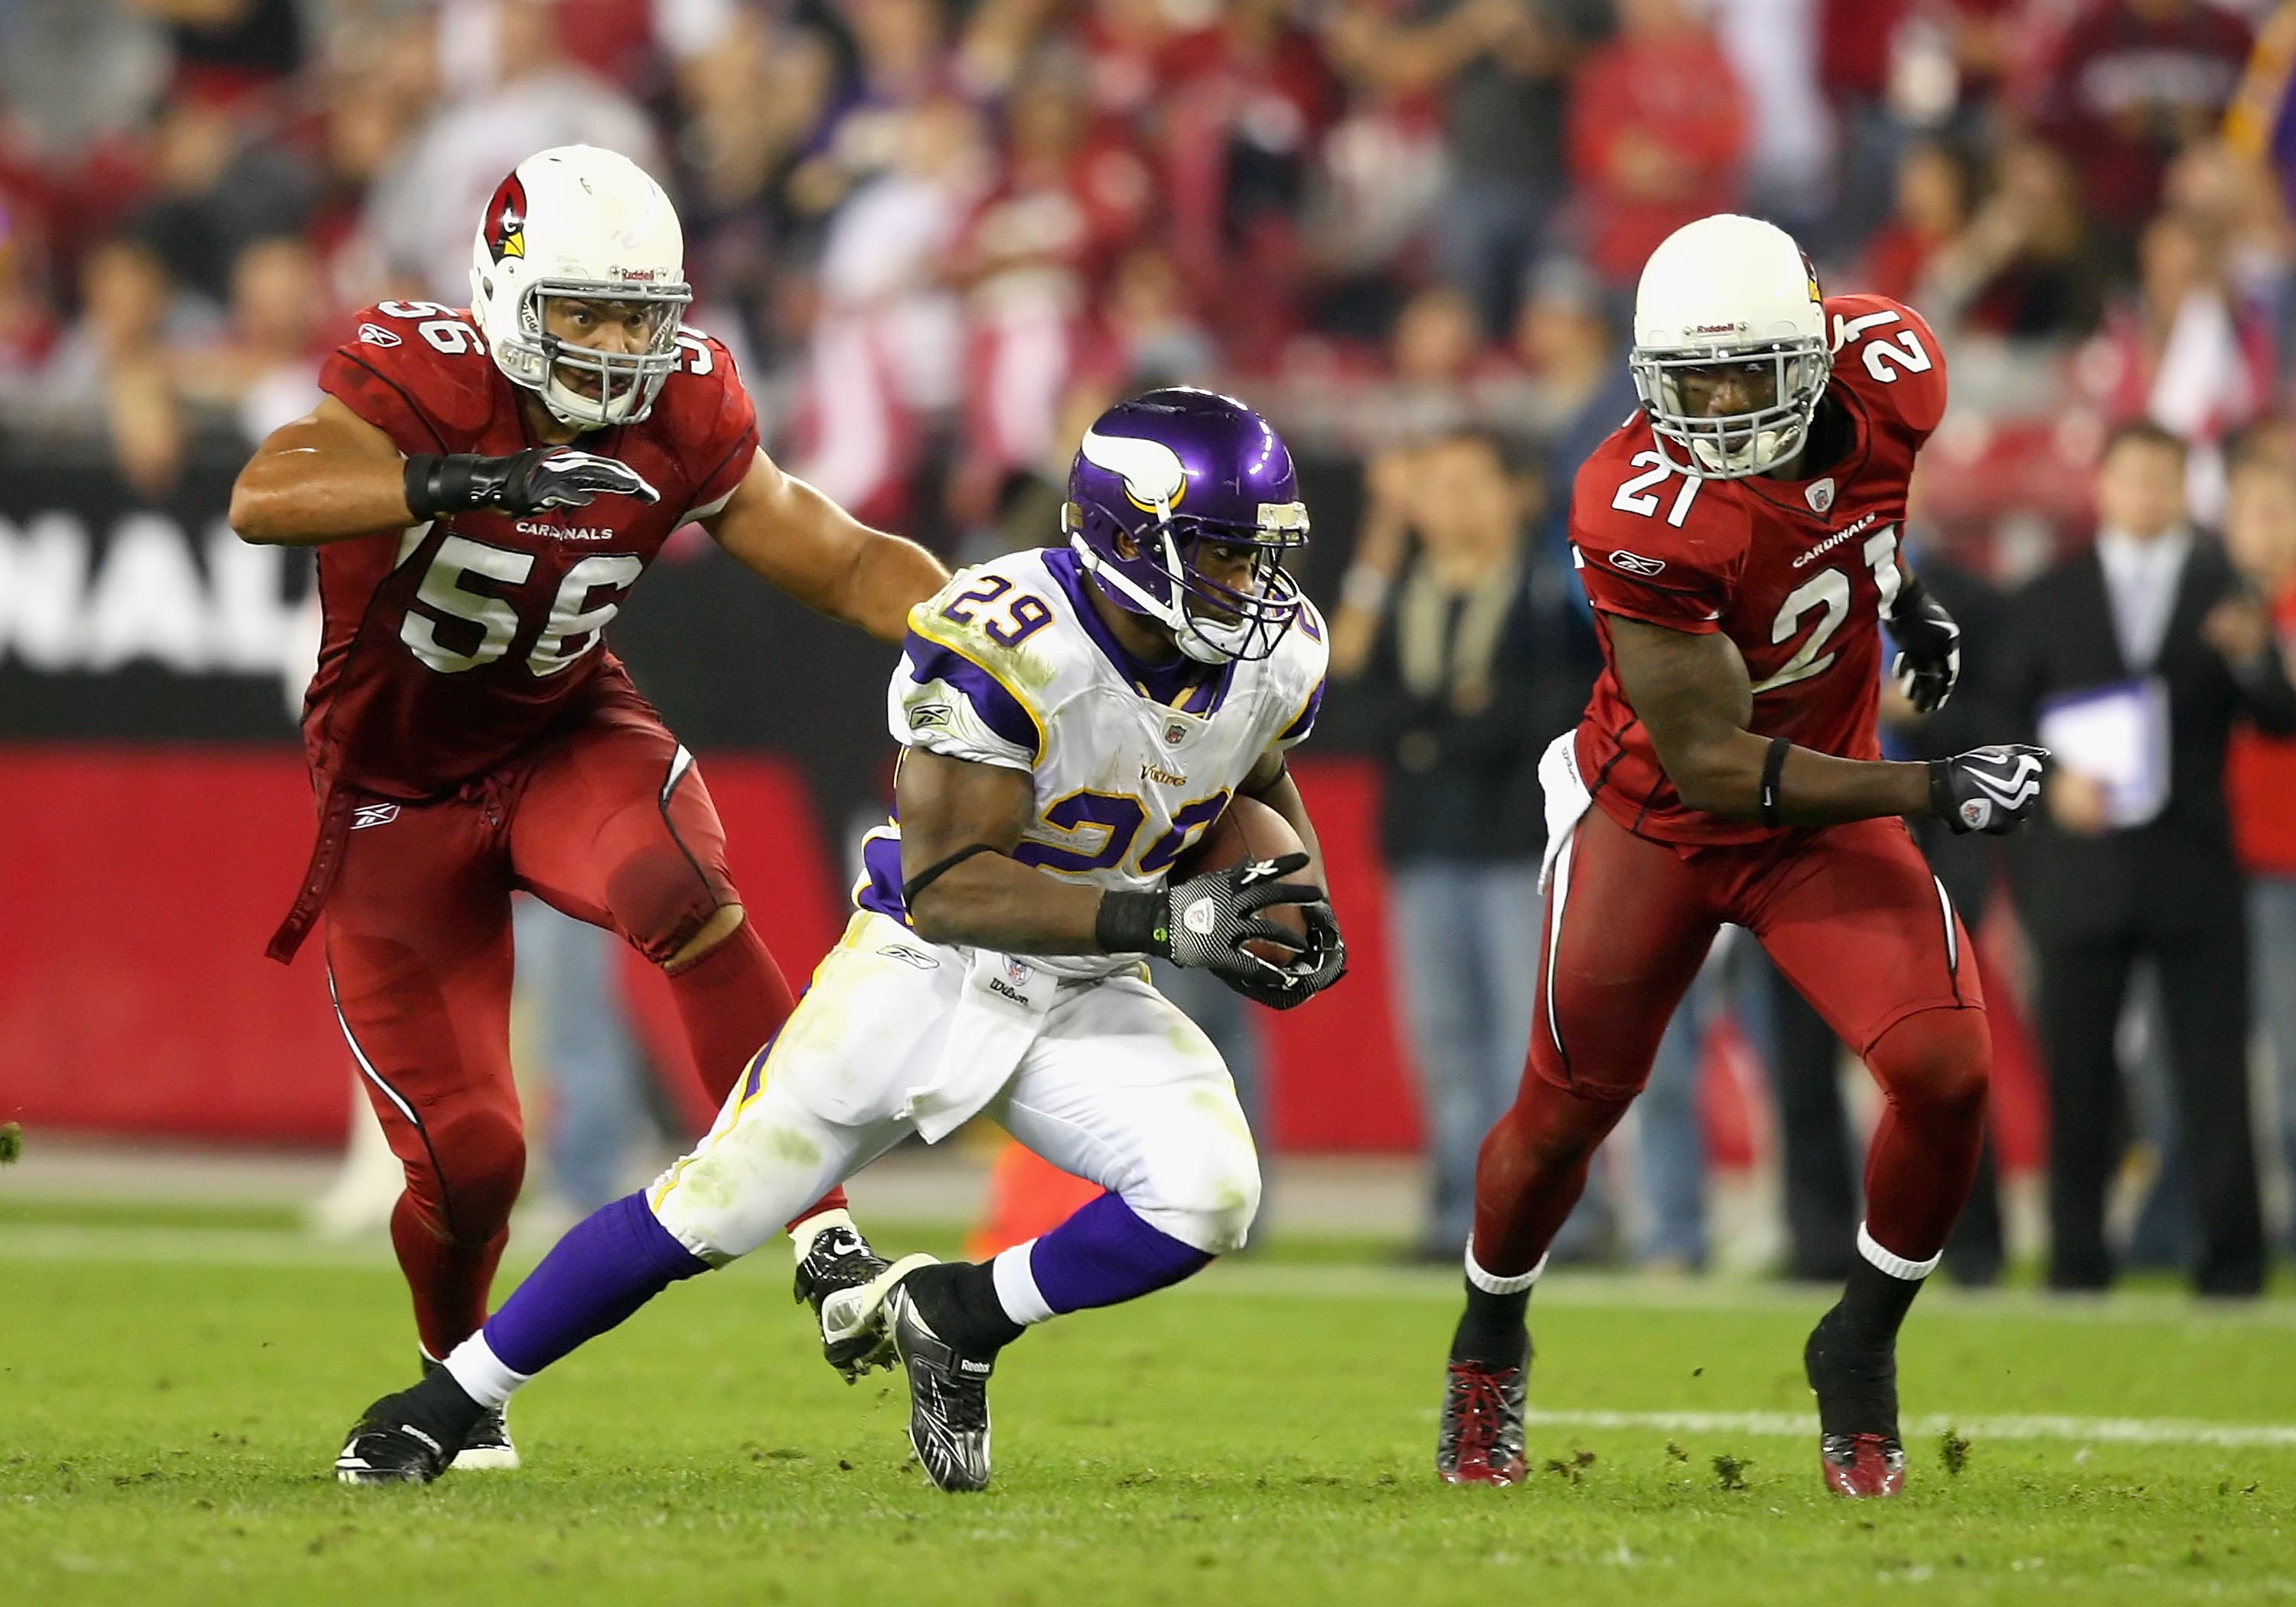 GLENDALE, AZ - DECEMBER 06:  Runningback Chester Taylor #29 of the Minnesota Vikings rushes the football during the NFL game against the Arizona Cardinals at the Universtity of Phoenix Stadium on December 6, 2009 in Glendale, Arizona.  The Cardinals defea